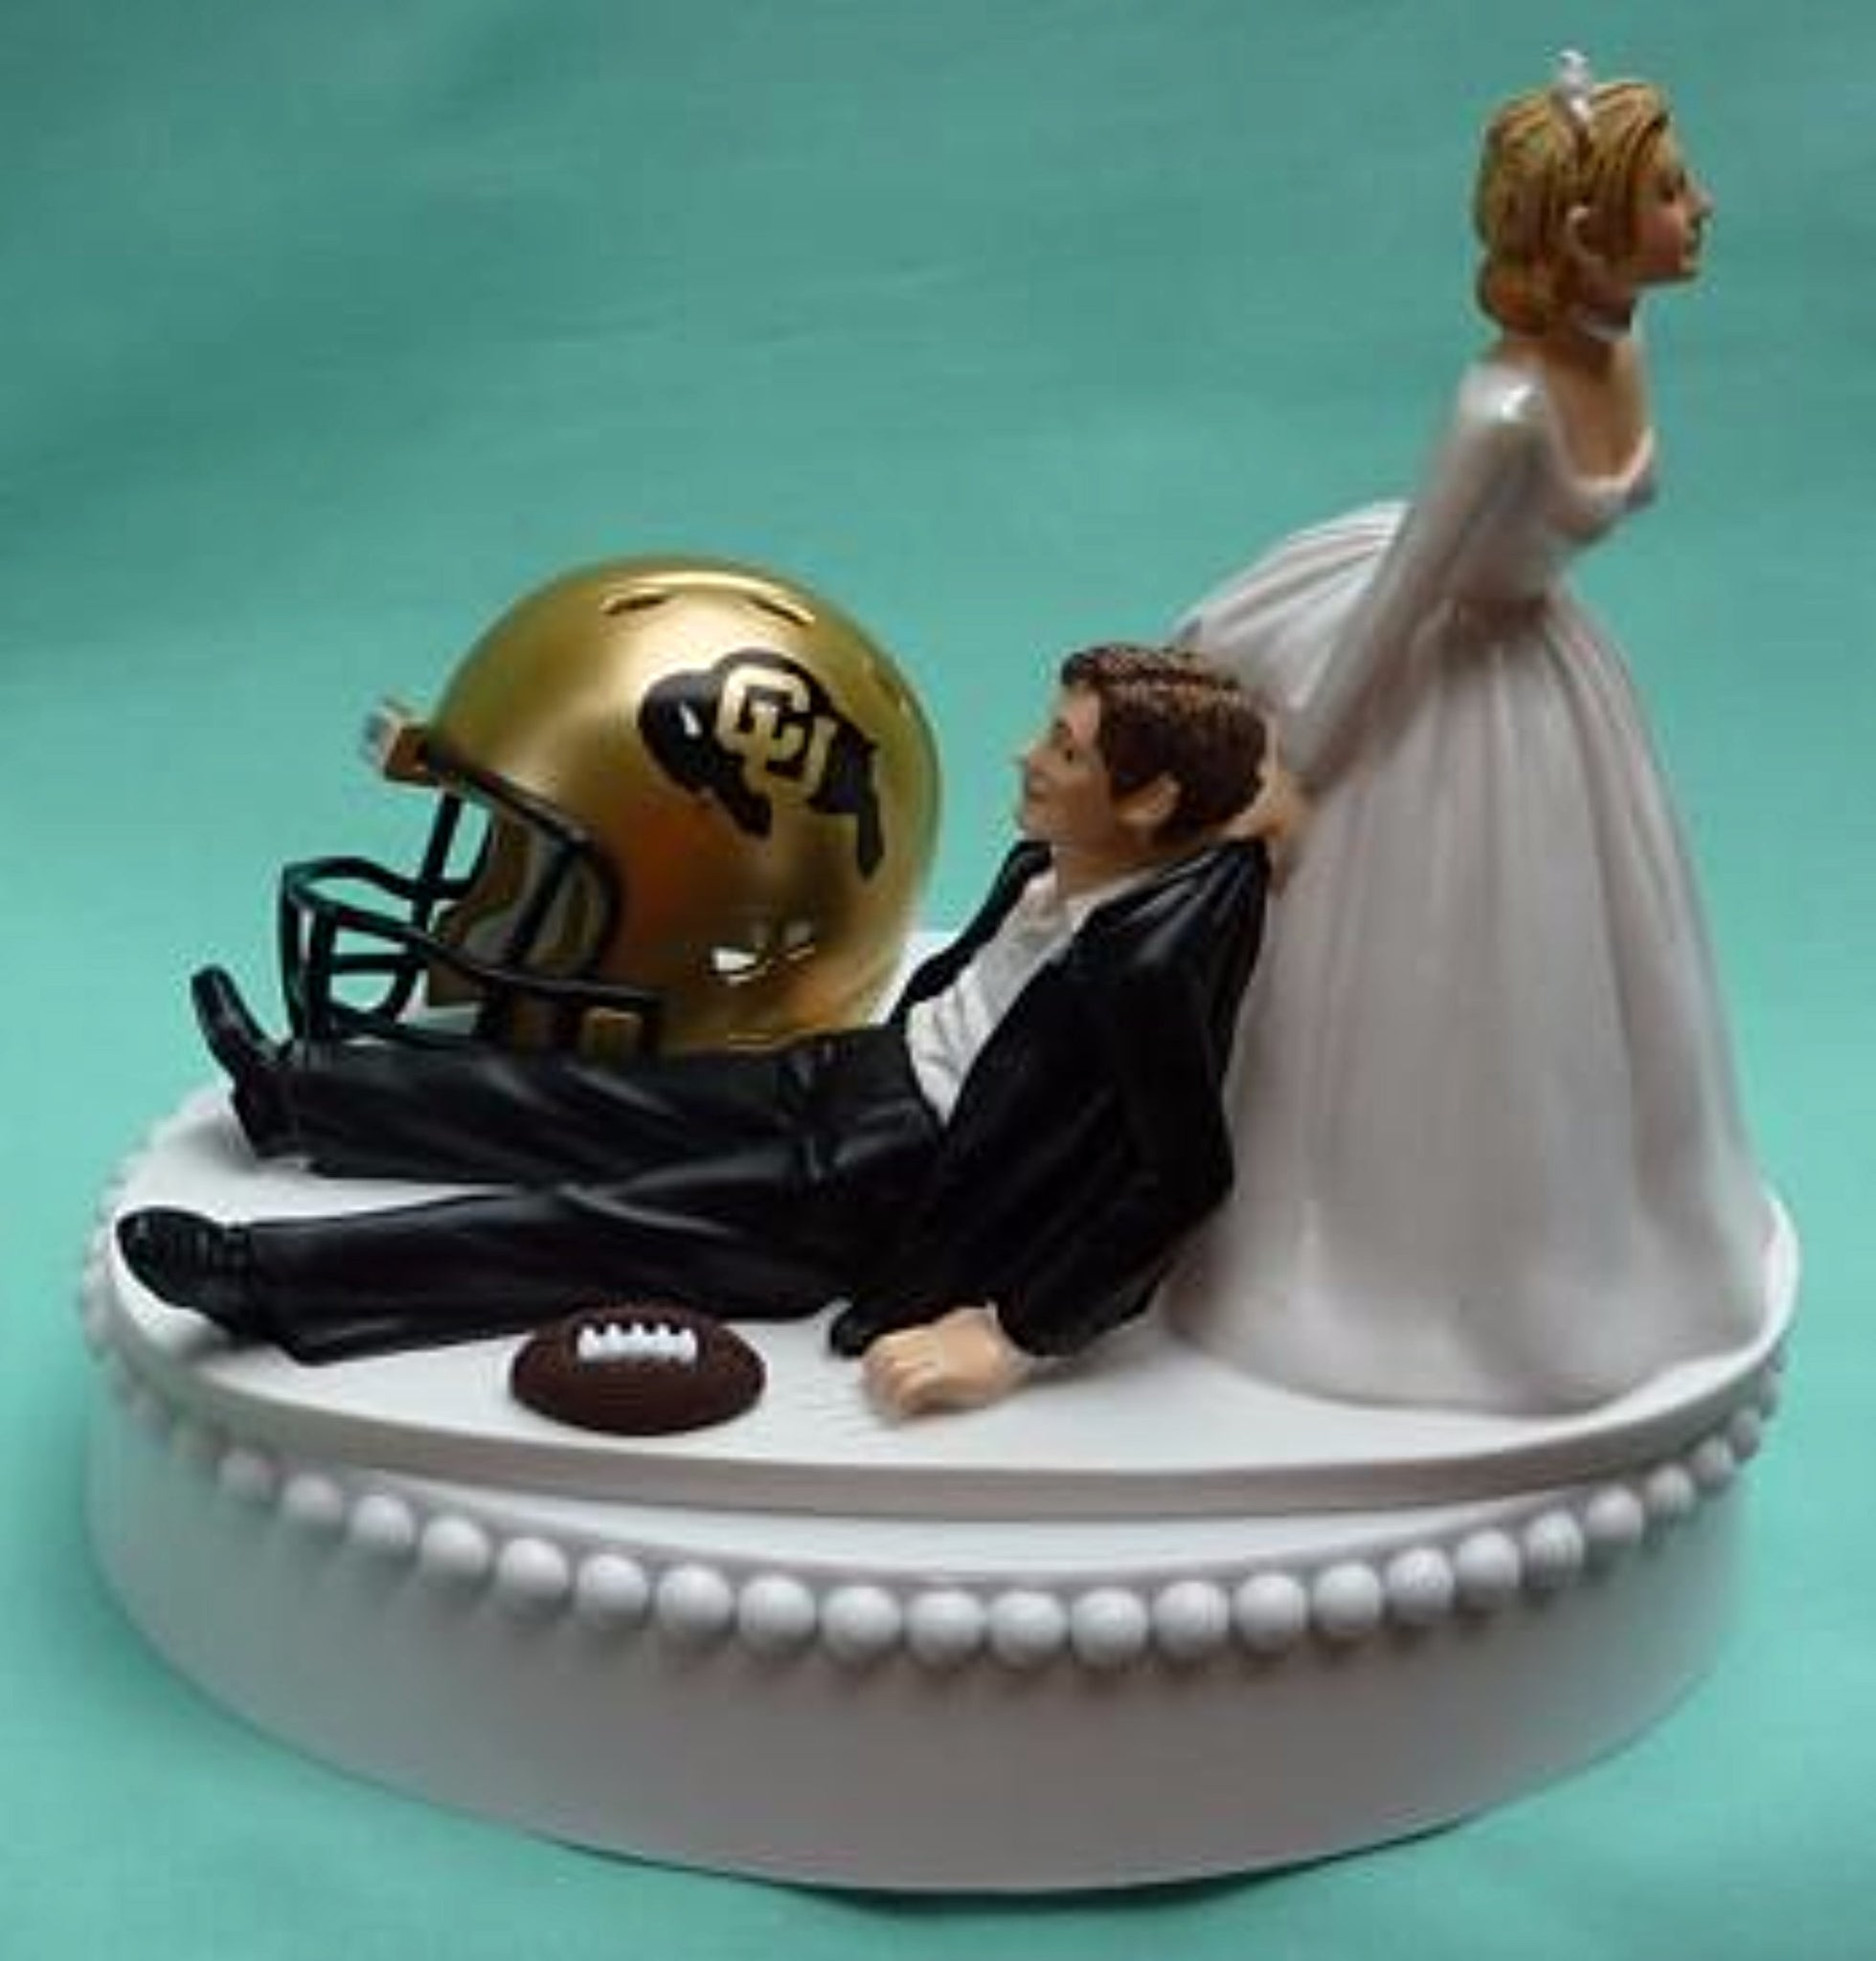 University of Colorado Buffaloes wedding cake topper CU Buffs football groom's cake top humorous bride dragging groom funny reception gift Fun Wedding Things